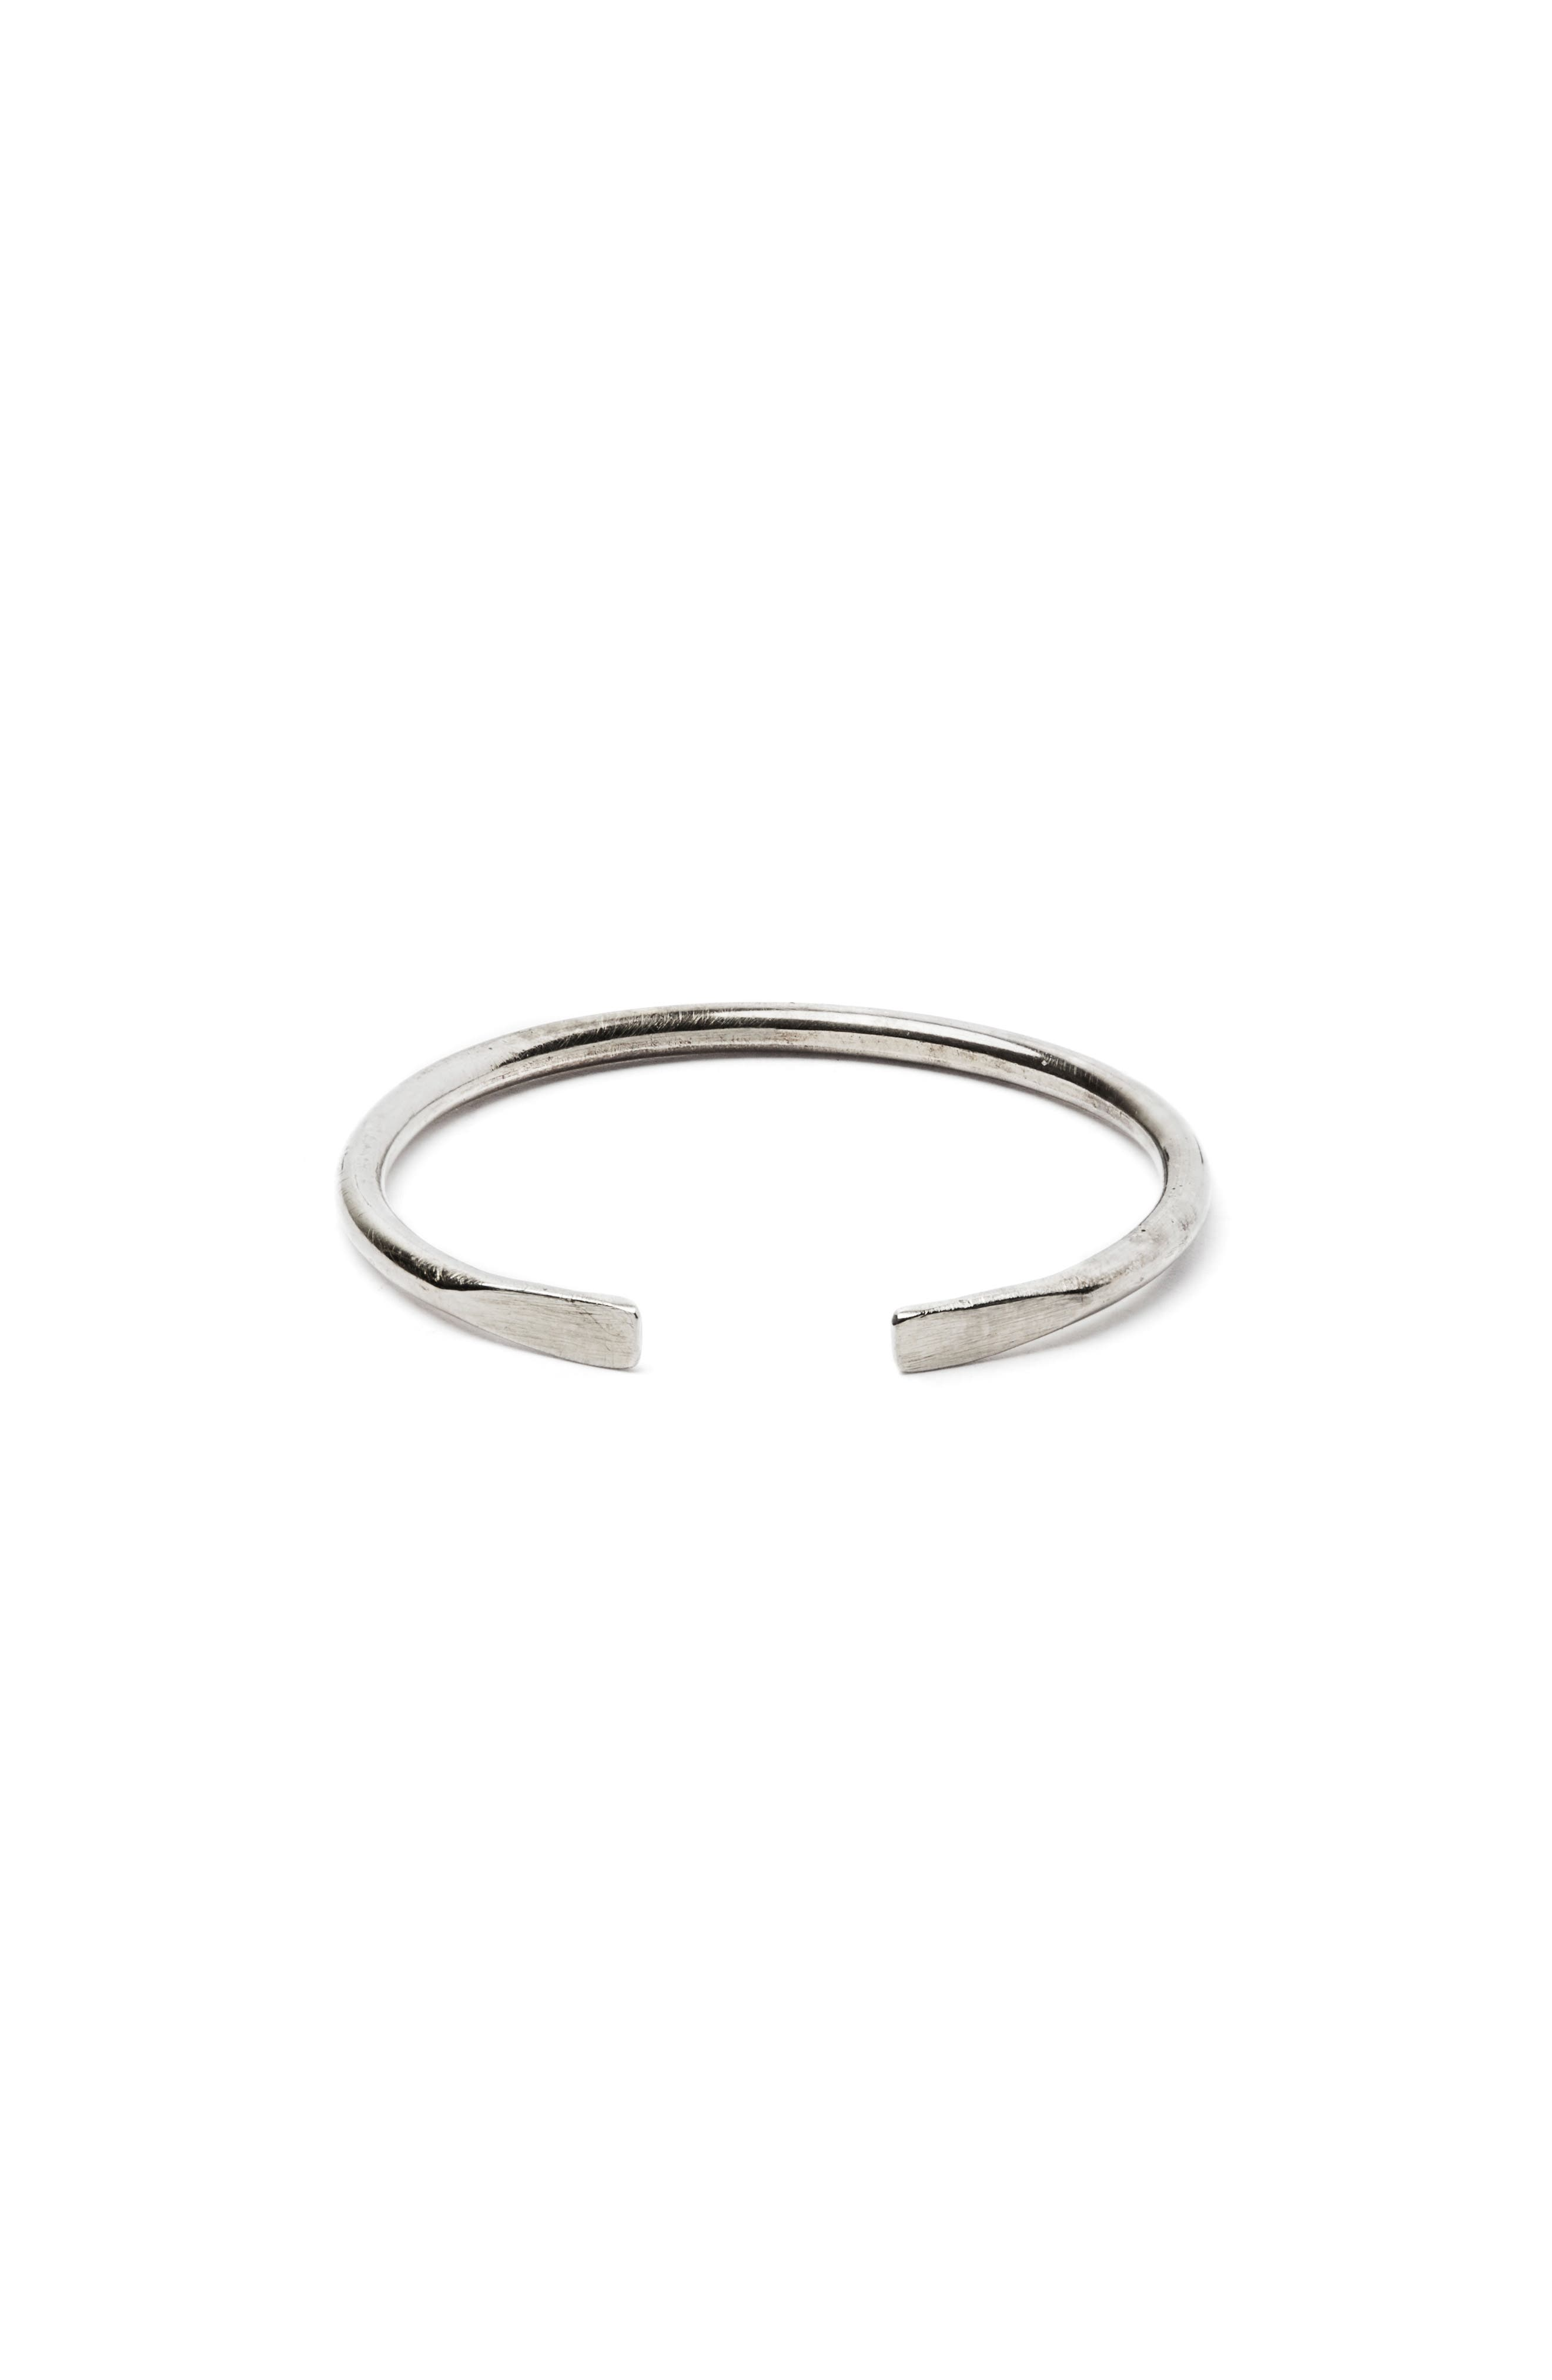 title of work 18k White Gold Ring